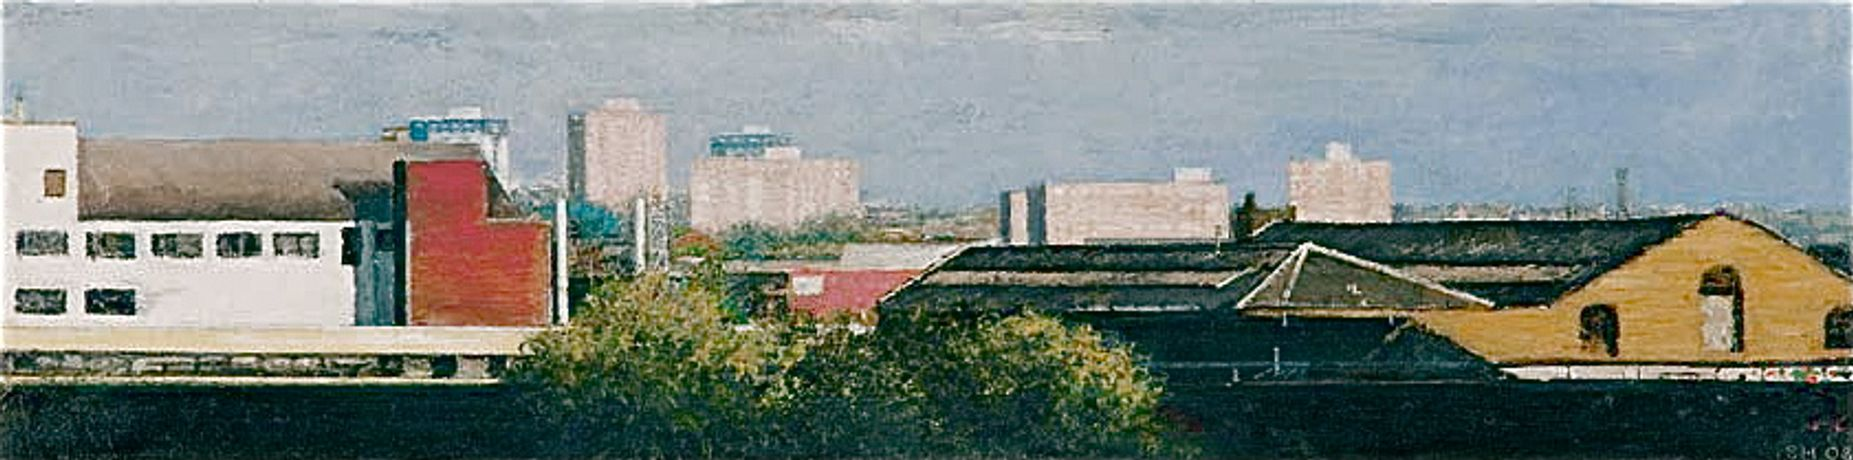 Exhibition of Urban Landscape Paintings by Simon Hopkinson at Bristol Folk House: Image 0